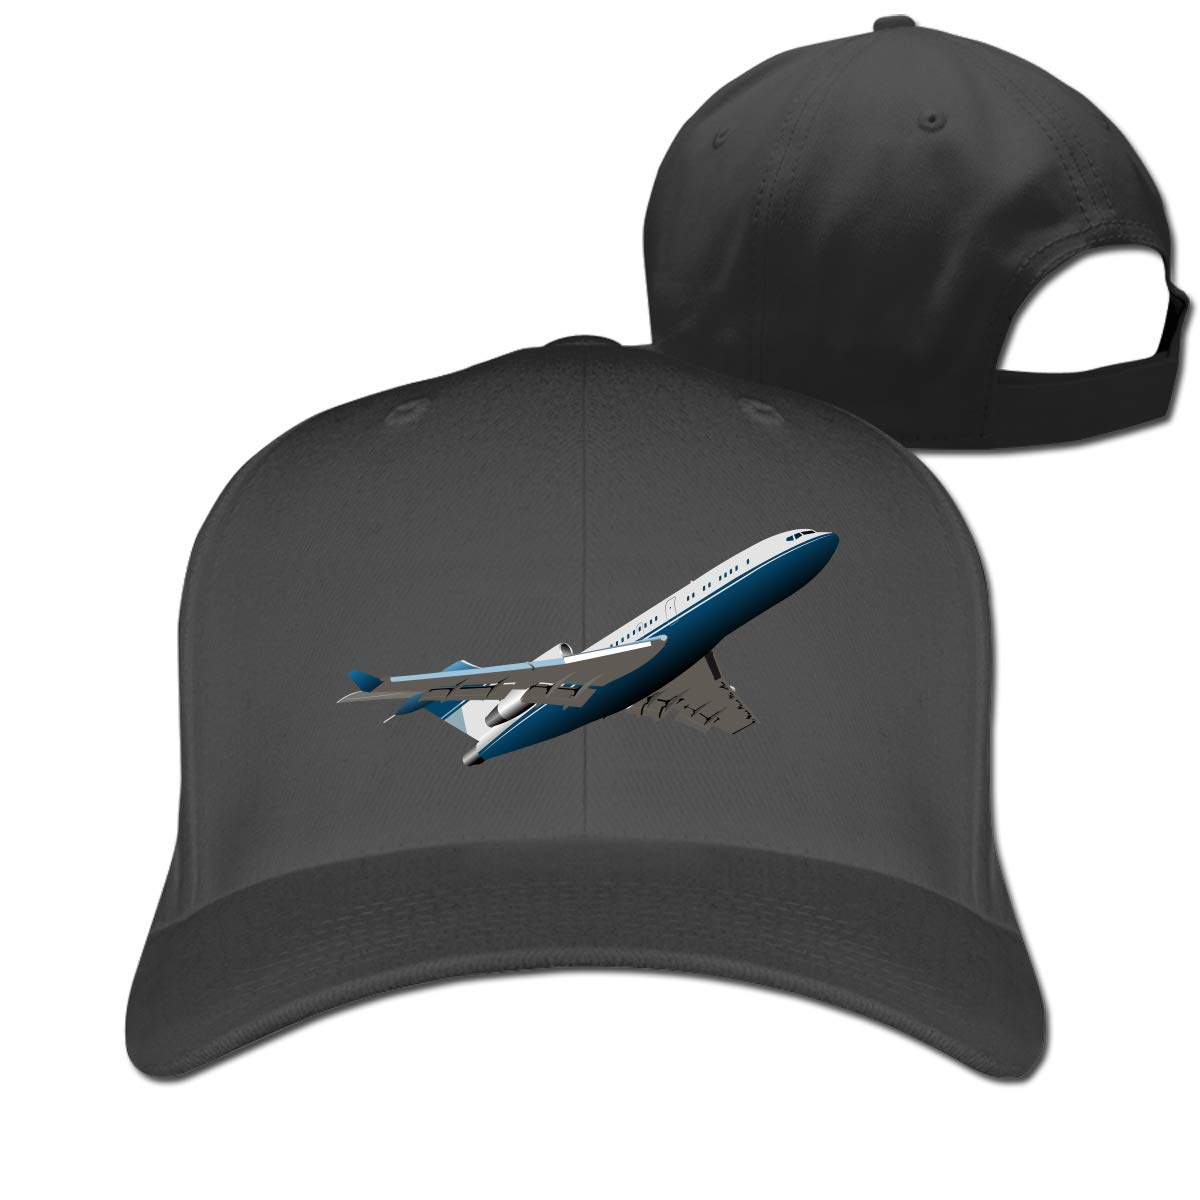 Airplane Classic Adjustable Cotton Baseball Caps Trucker Driver Hat Outdoor Cap Fitted Hats Dad Hat Black